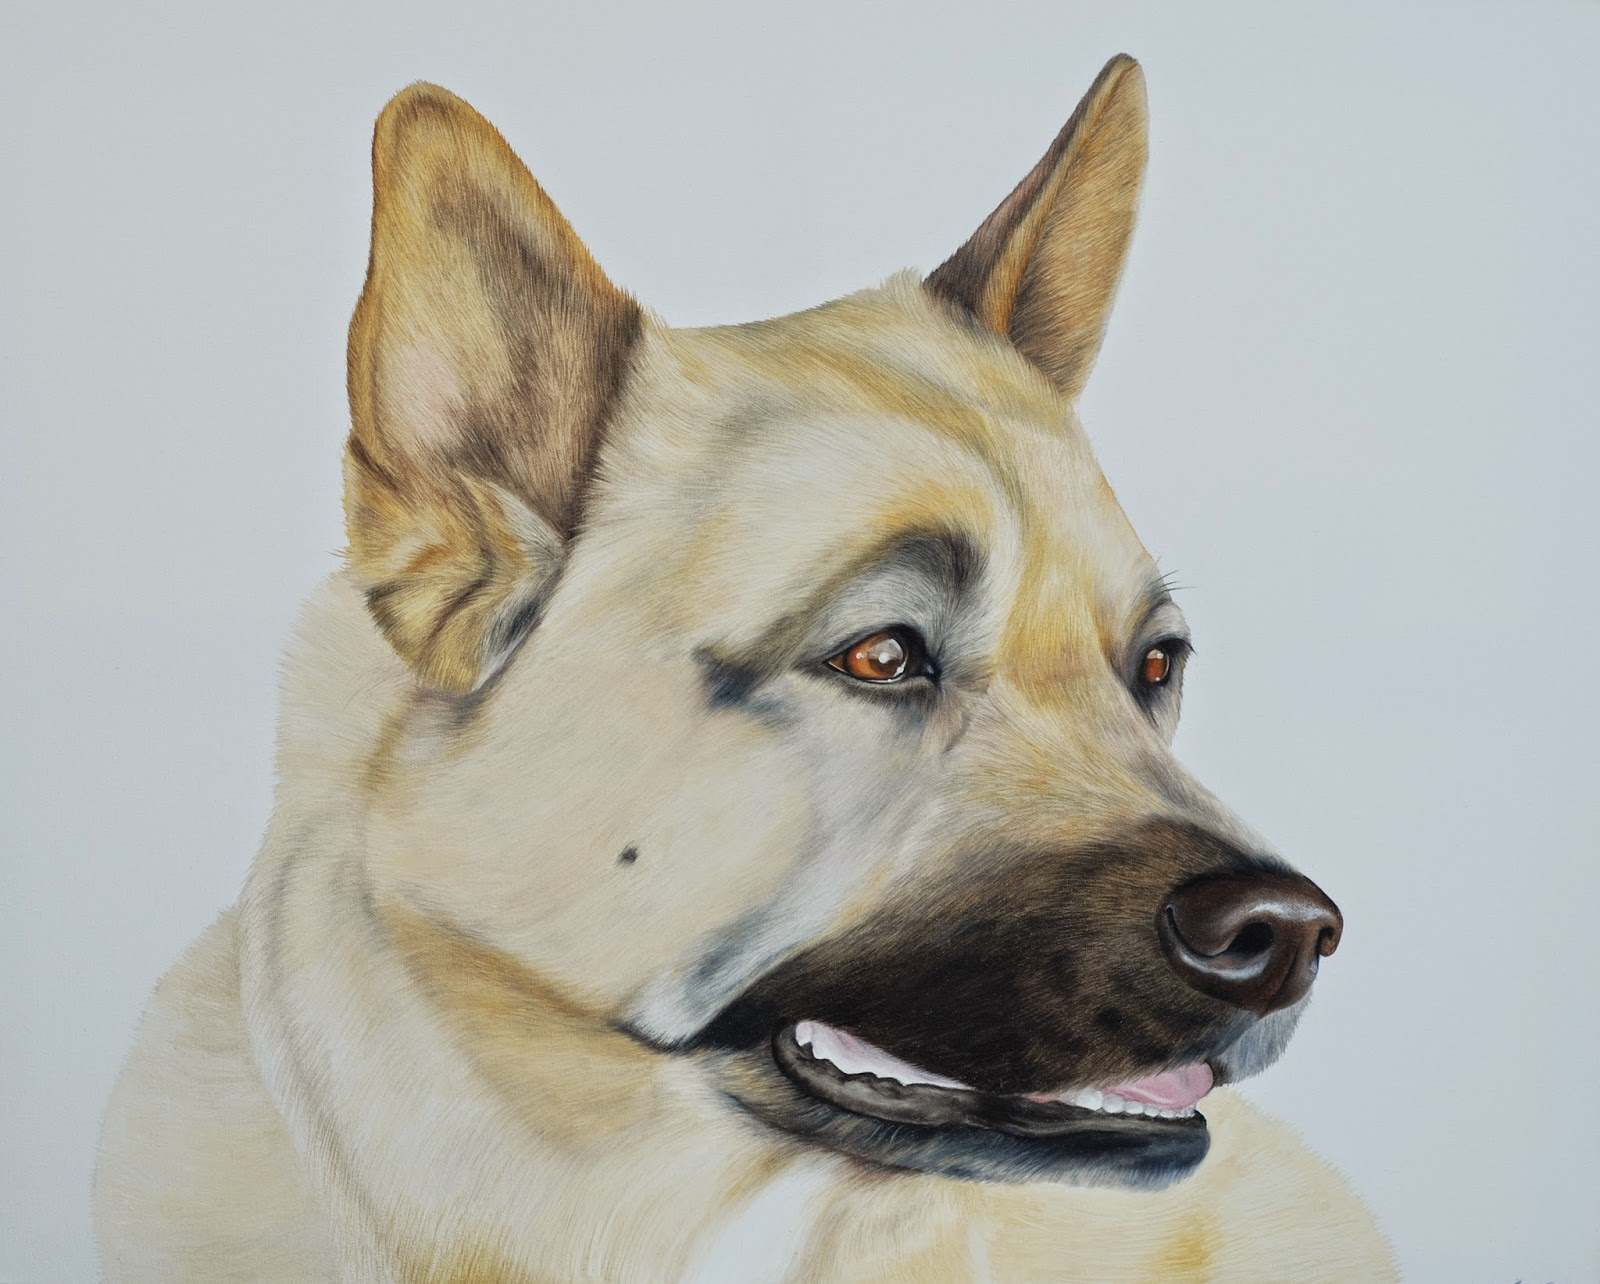 Pet portrait of a Japanese Akita Rottweiler oil on canvas